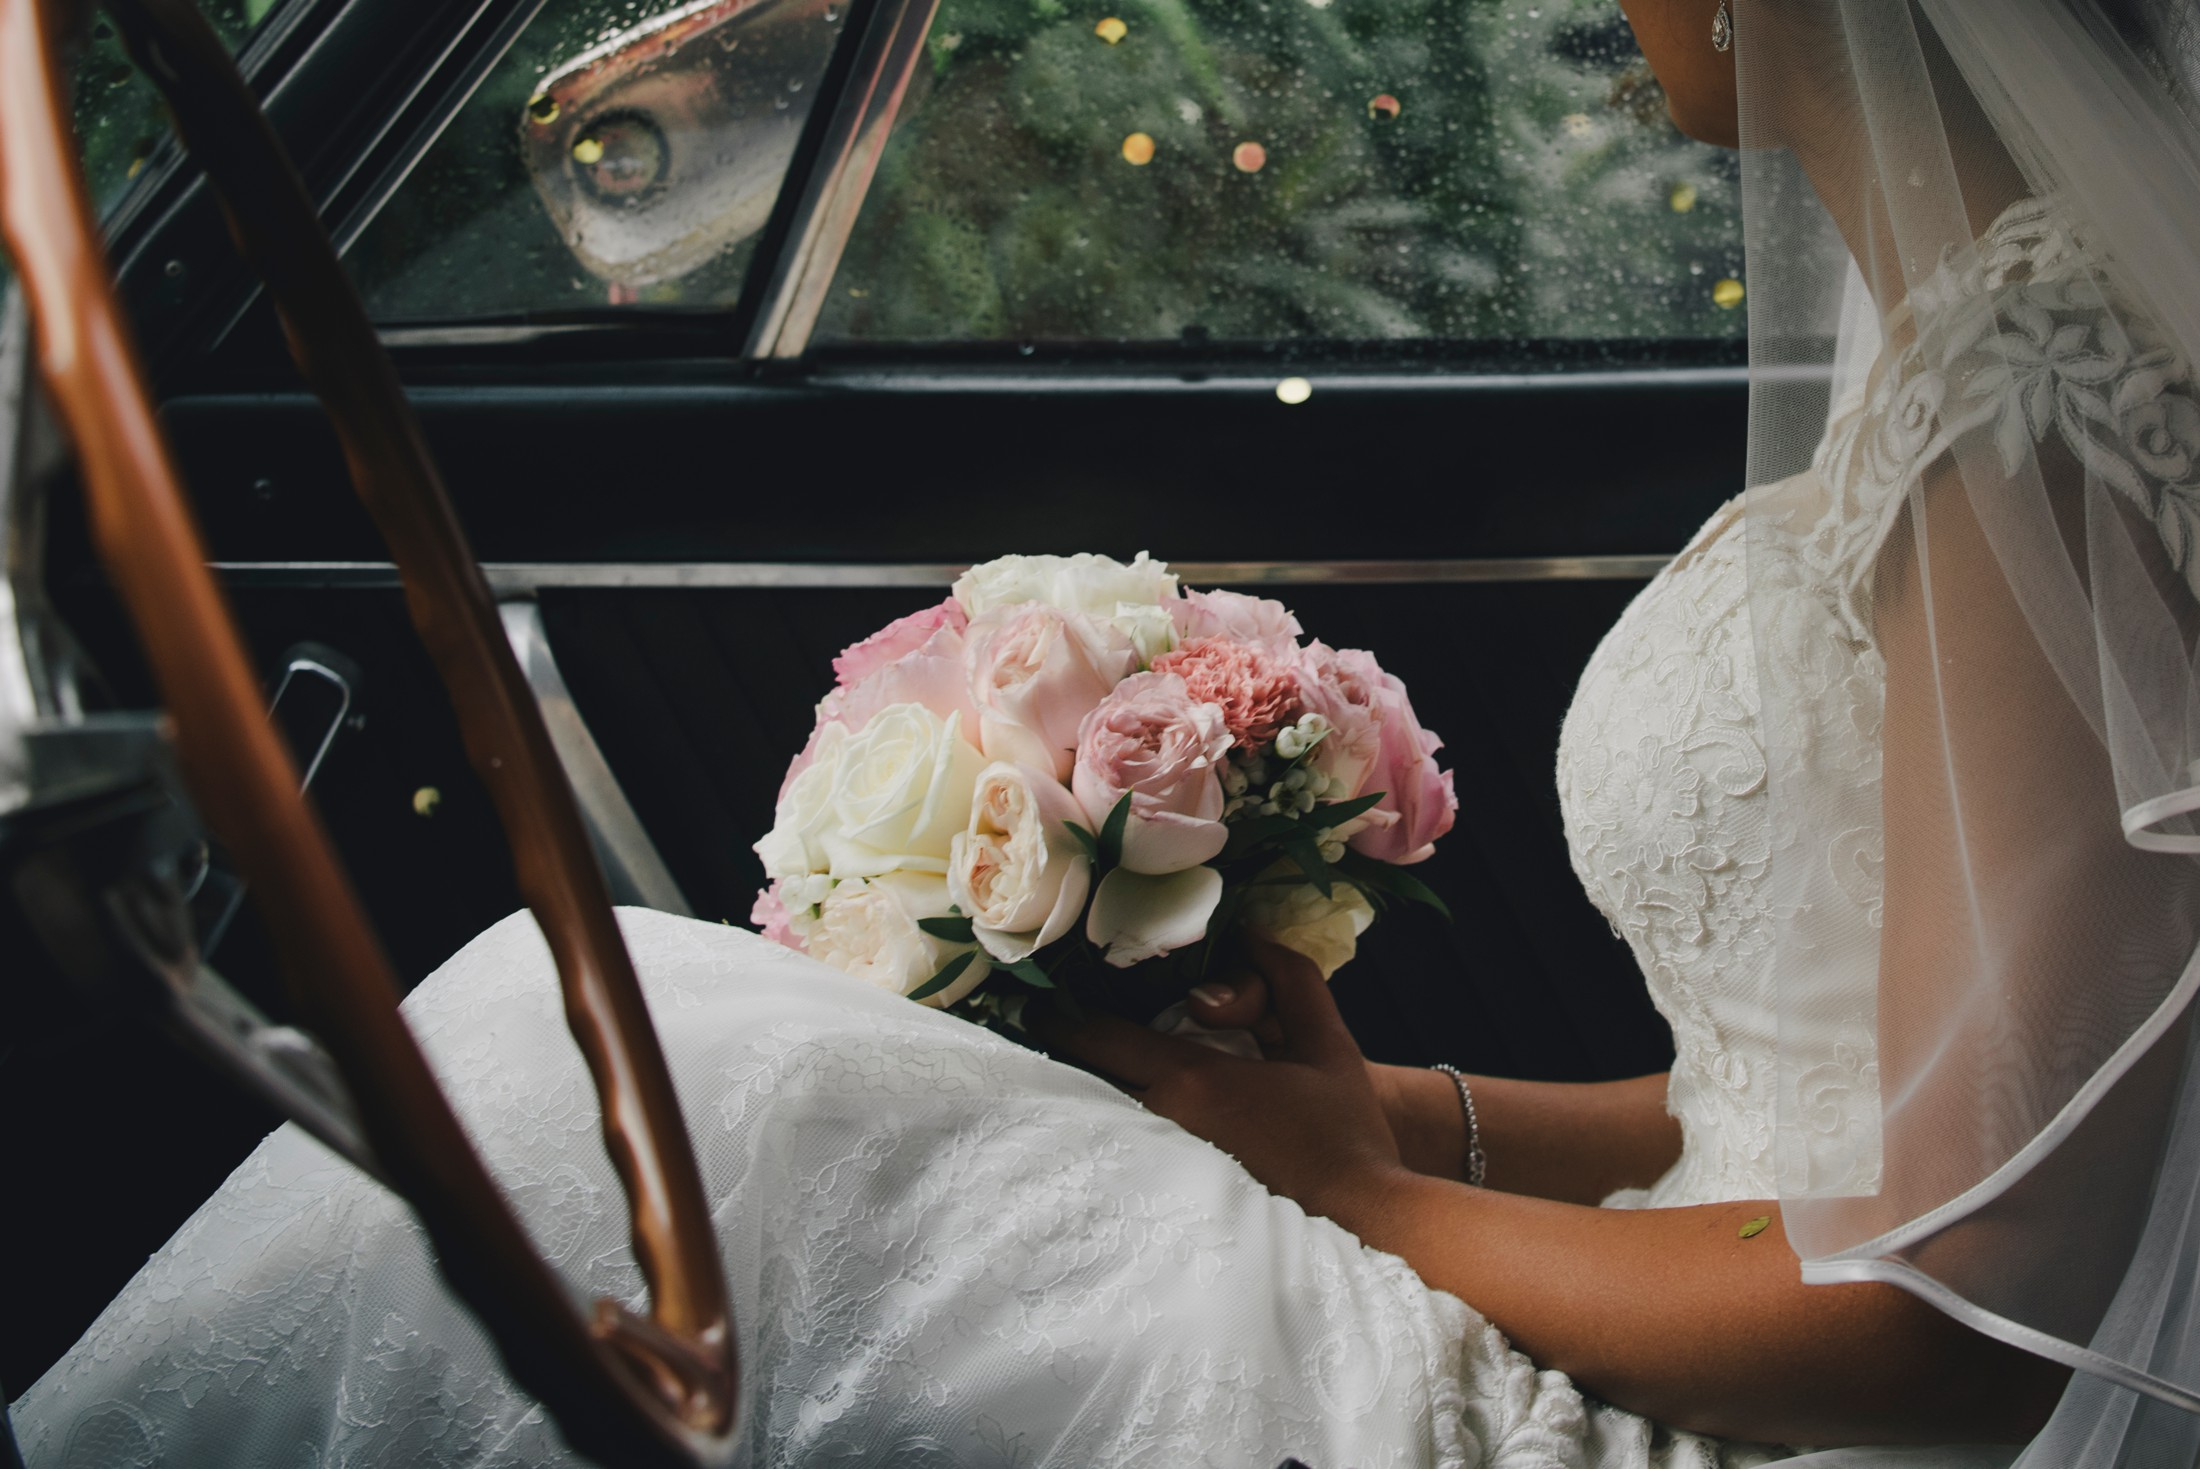 the bride sitting in the wedding car with the bouquet